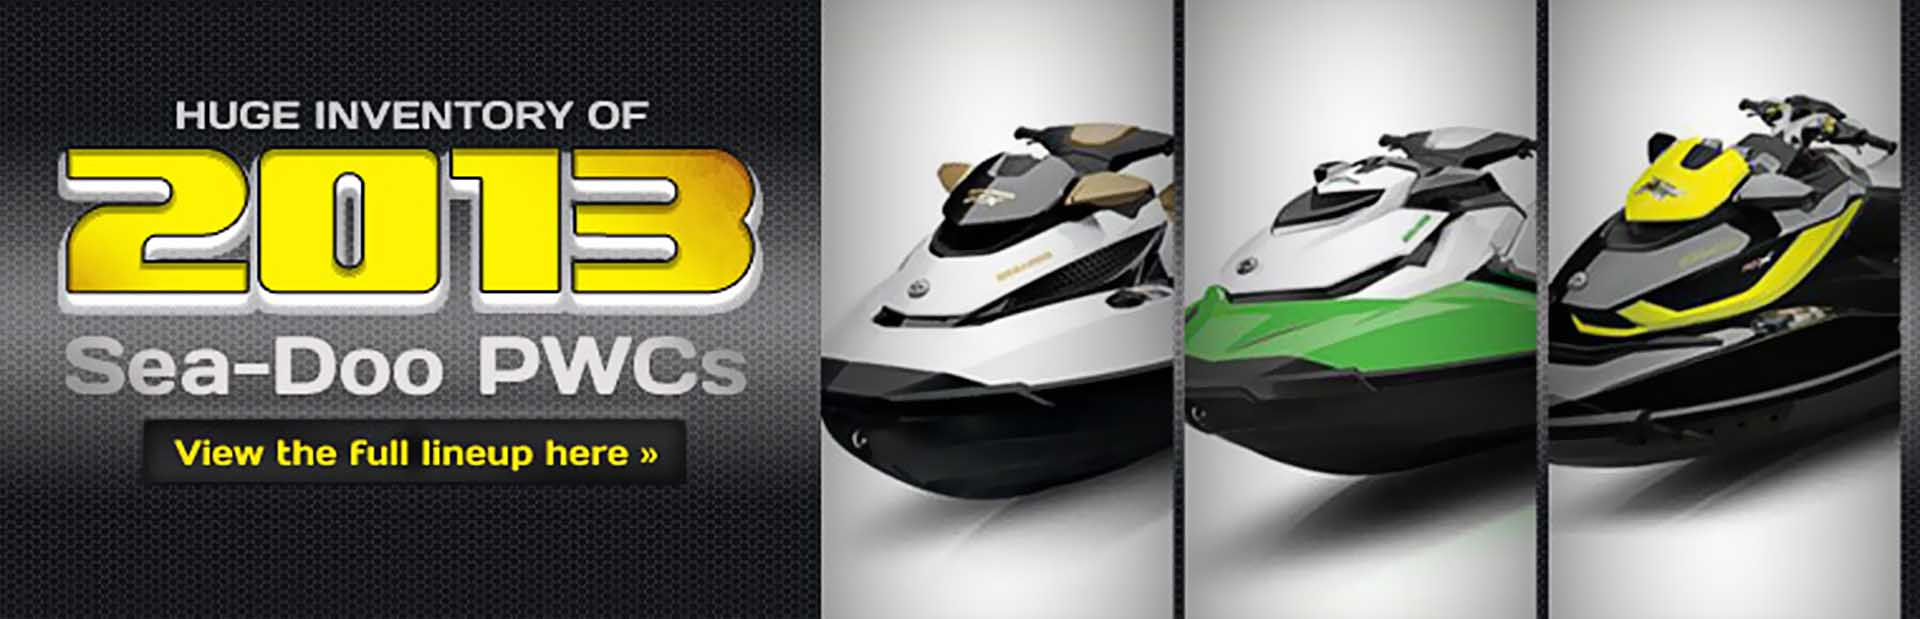 Click here to view the 2013 Sea-Doo PWCs.